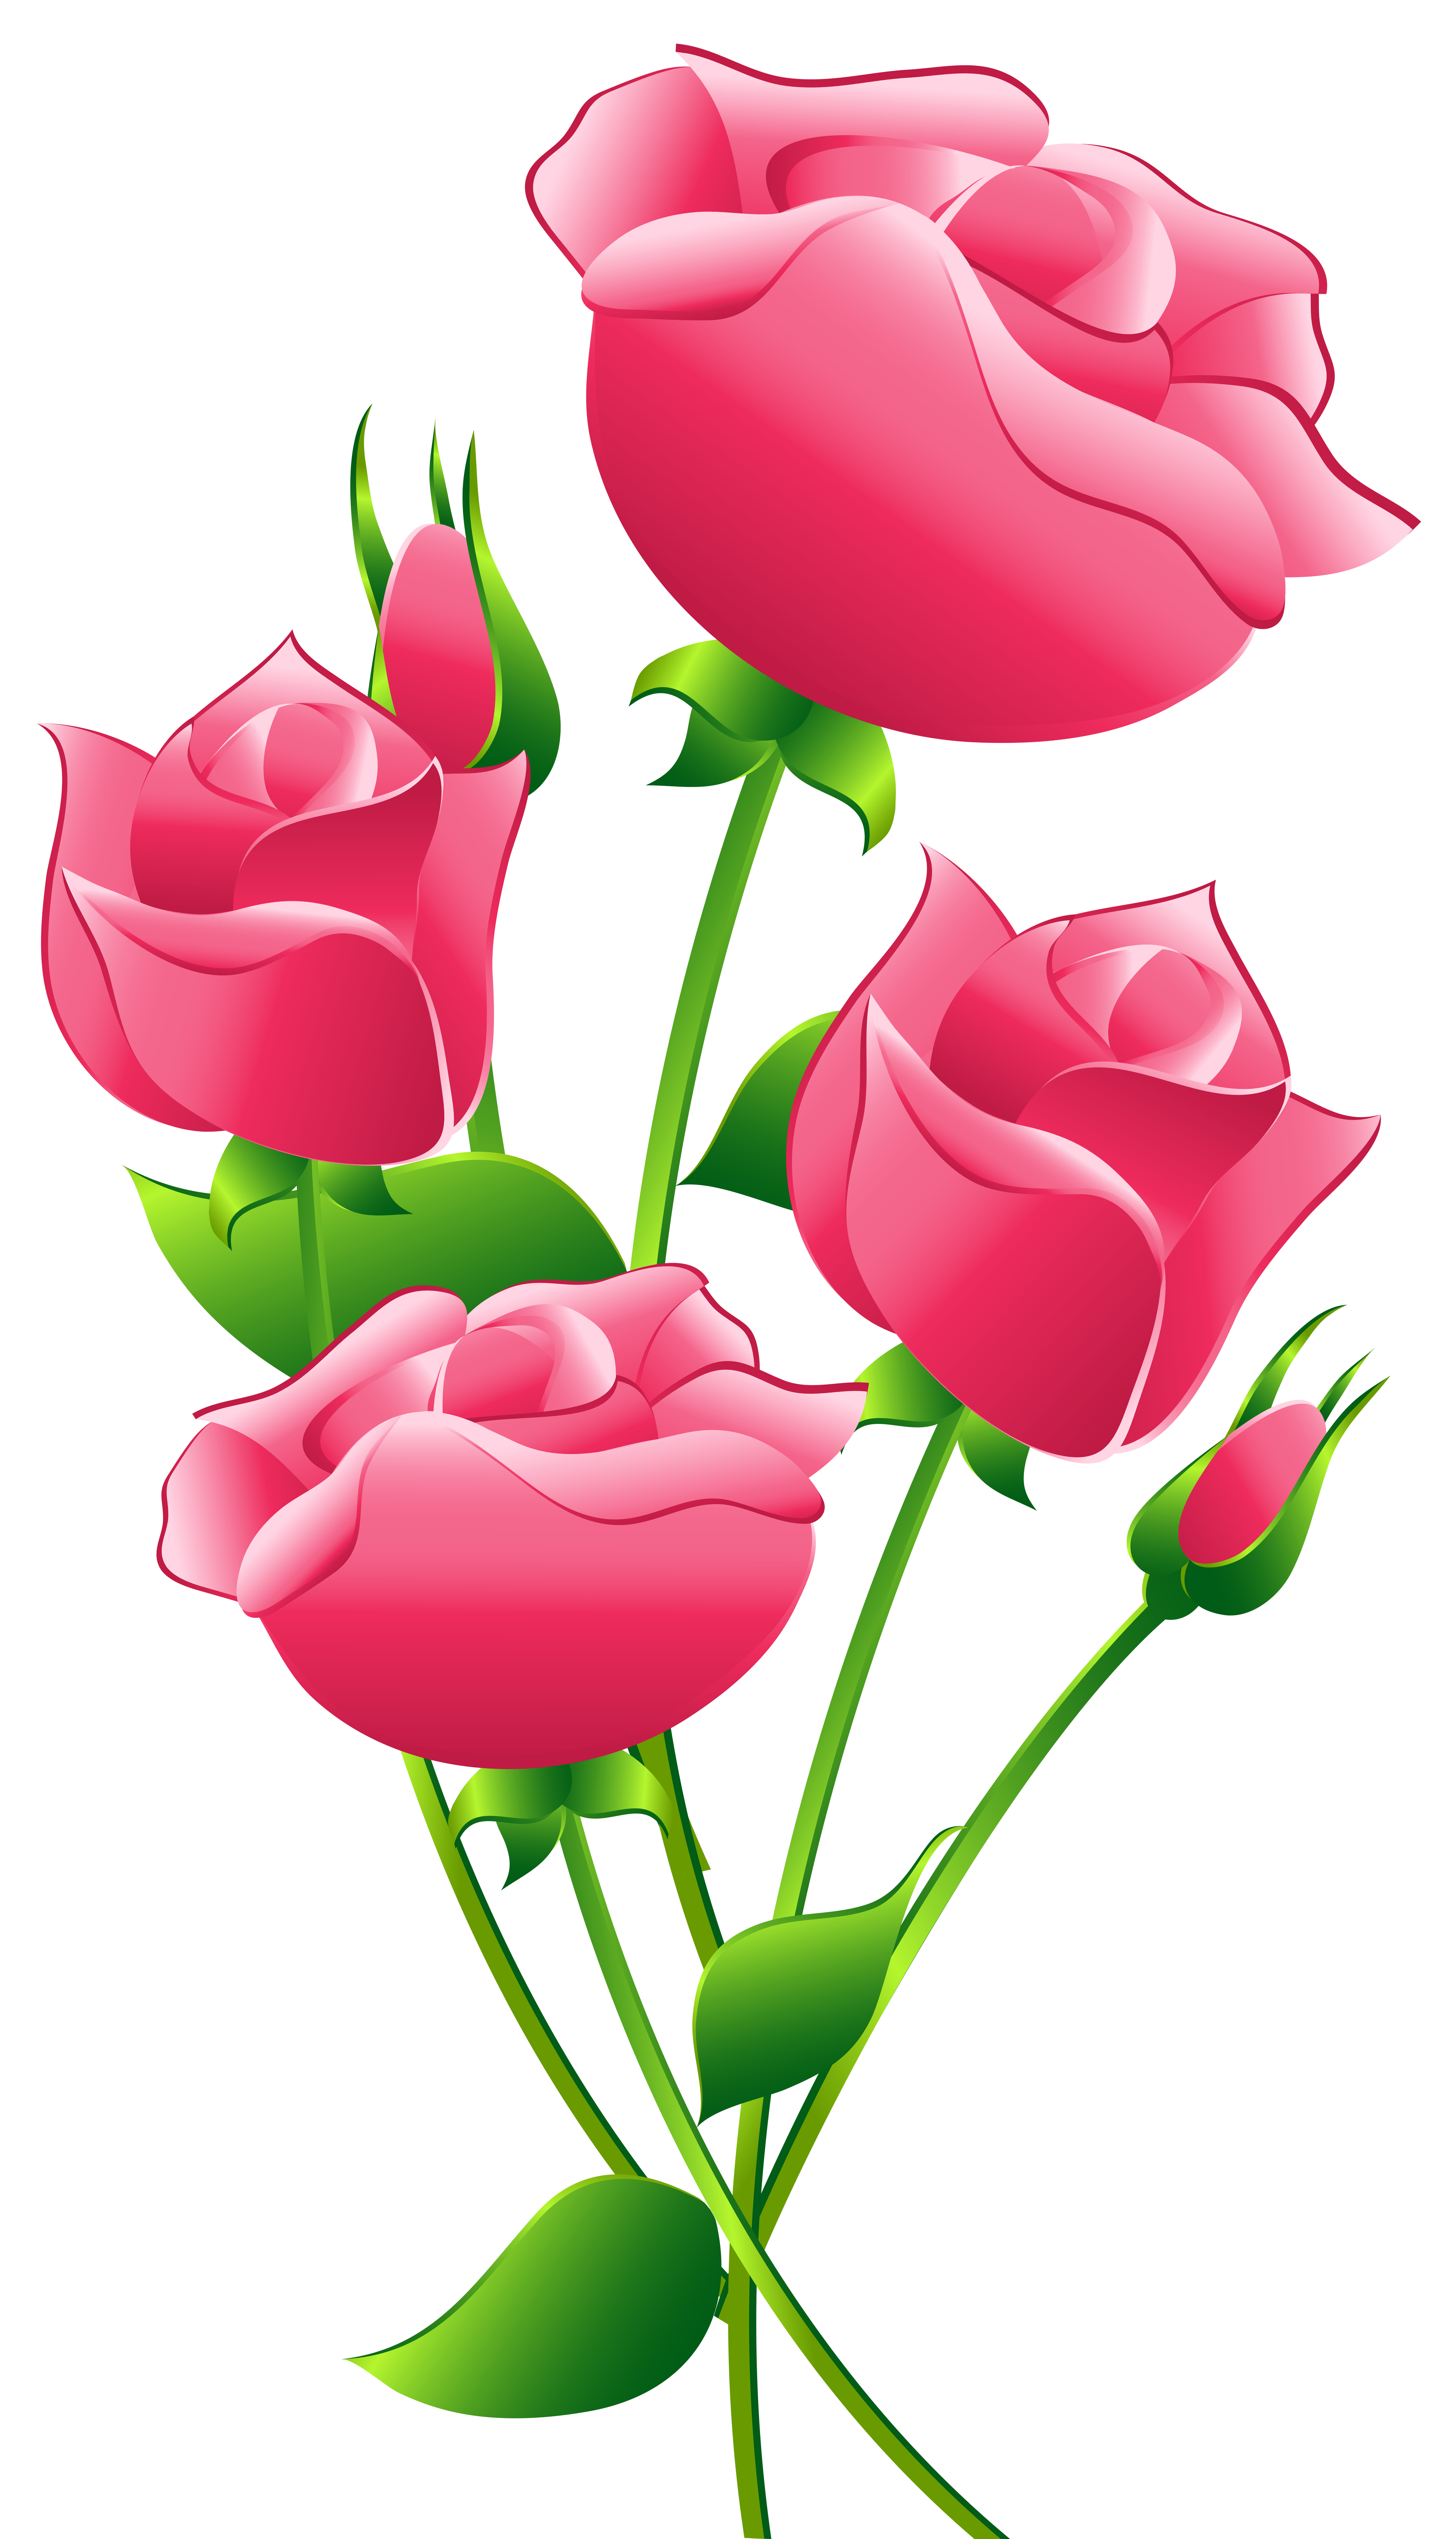 Roses steam rose clipart image.